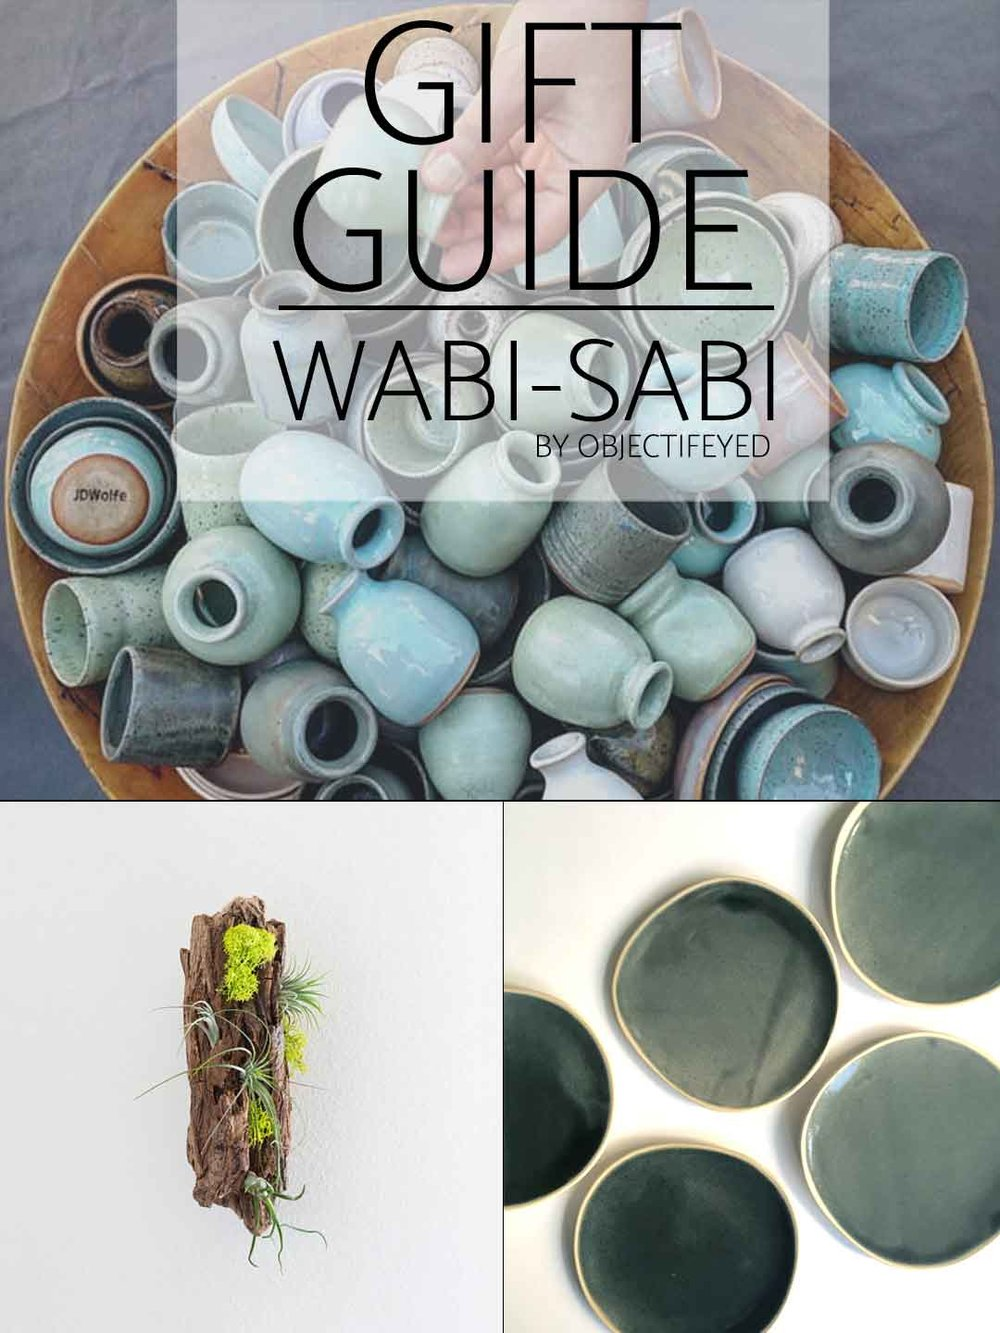 Gift Guide from the Wabi Sabi-st by Objectifeyed.jpg